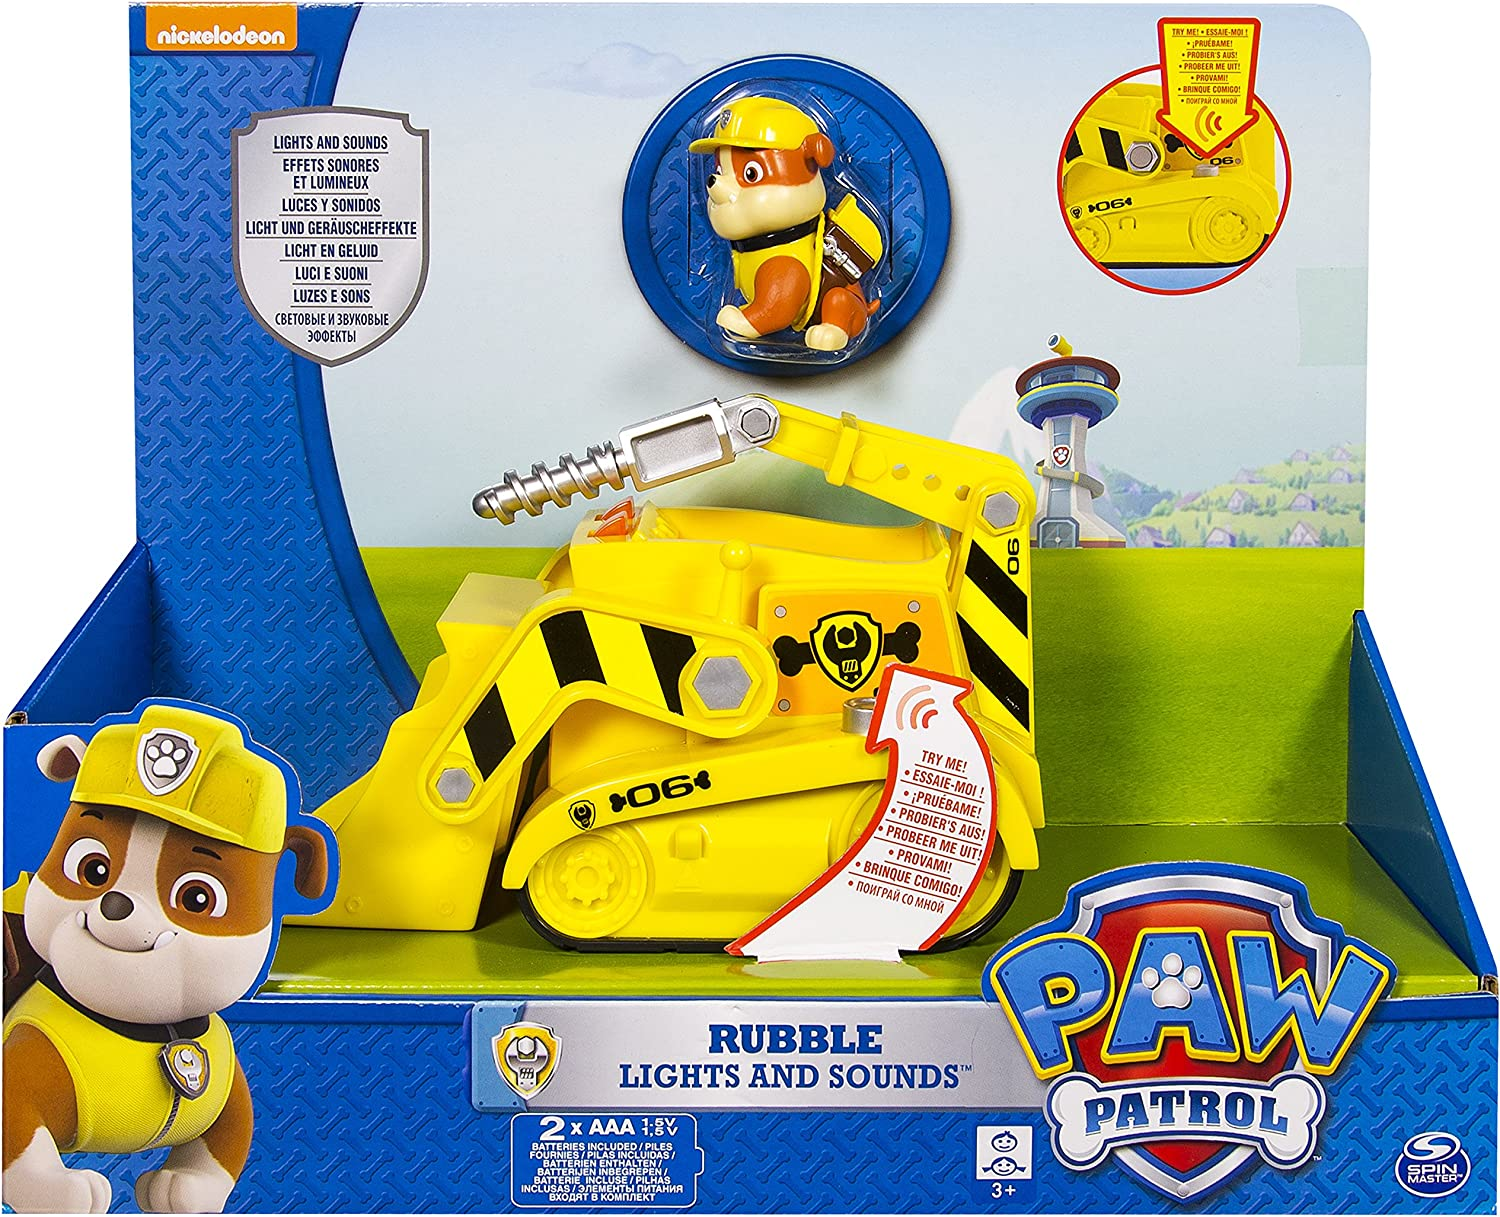 PAW PATROL 6027167 Lights and Sounds Vehicle Rubble Playset